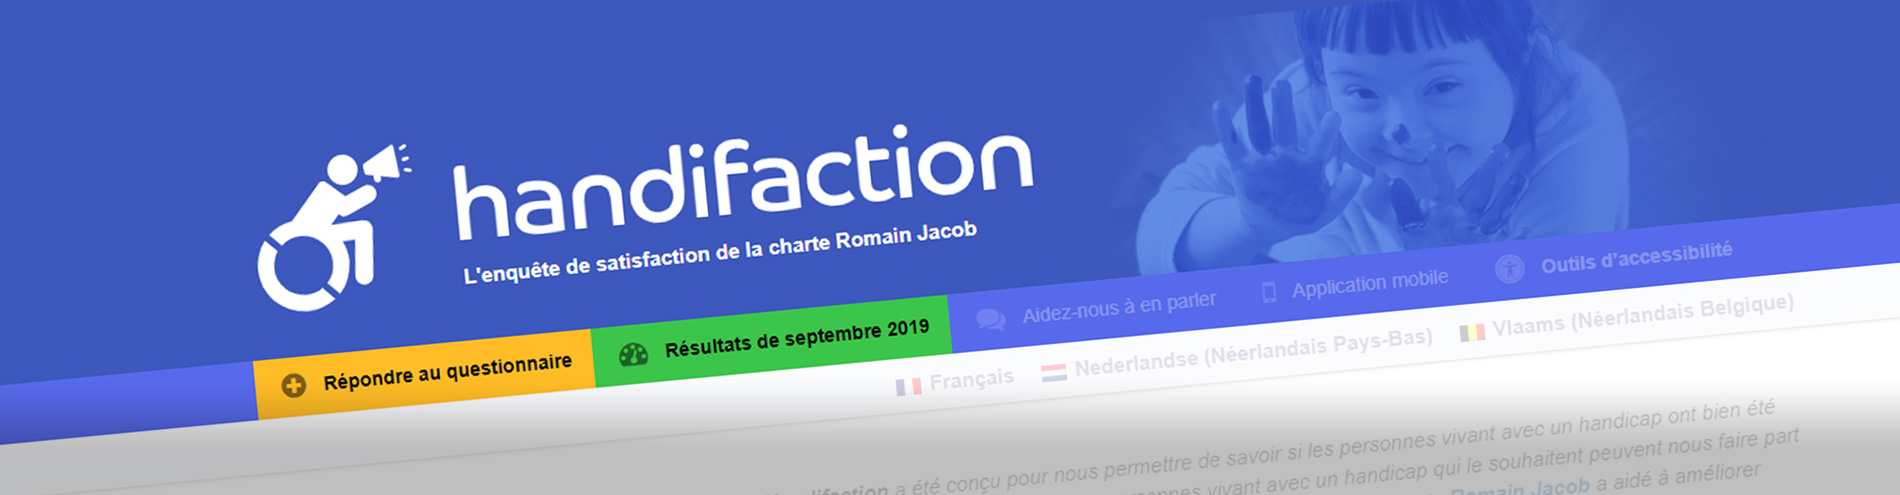 banner-handifaction-2019